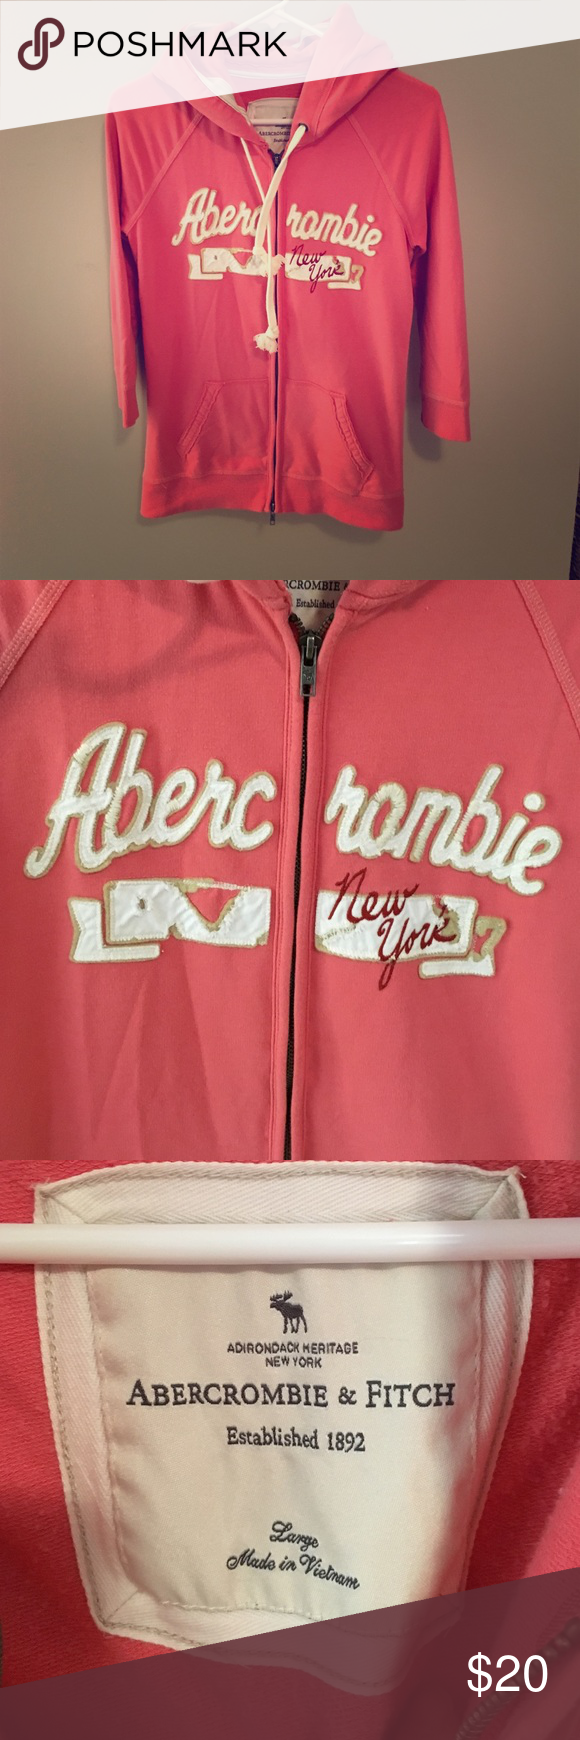 Abercrombie & Fitch 3/4 Sleeve Hoodie Excellent condition and soooo soft!! 💕 Abercrombie & Fitch Tops Sweatshirts & Hoodies